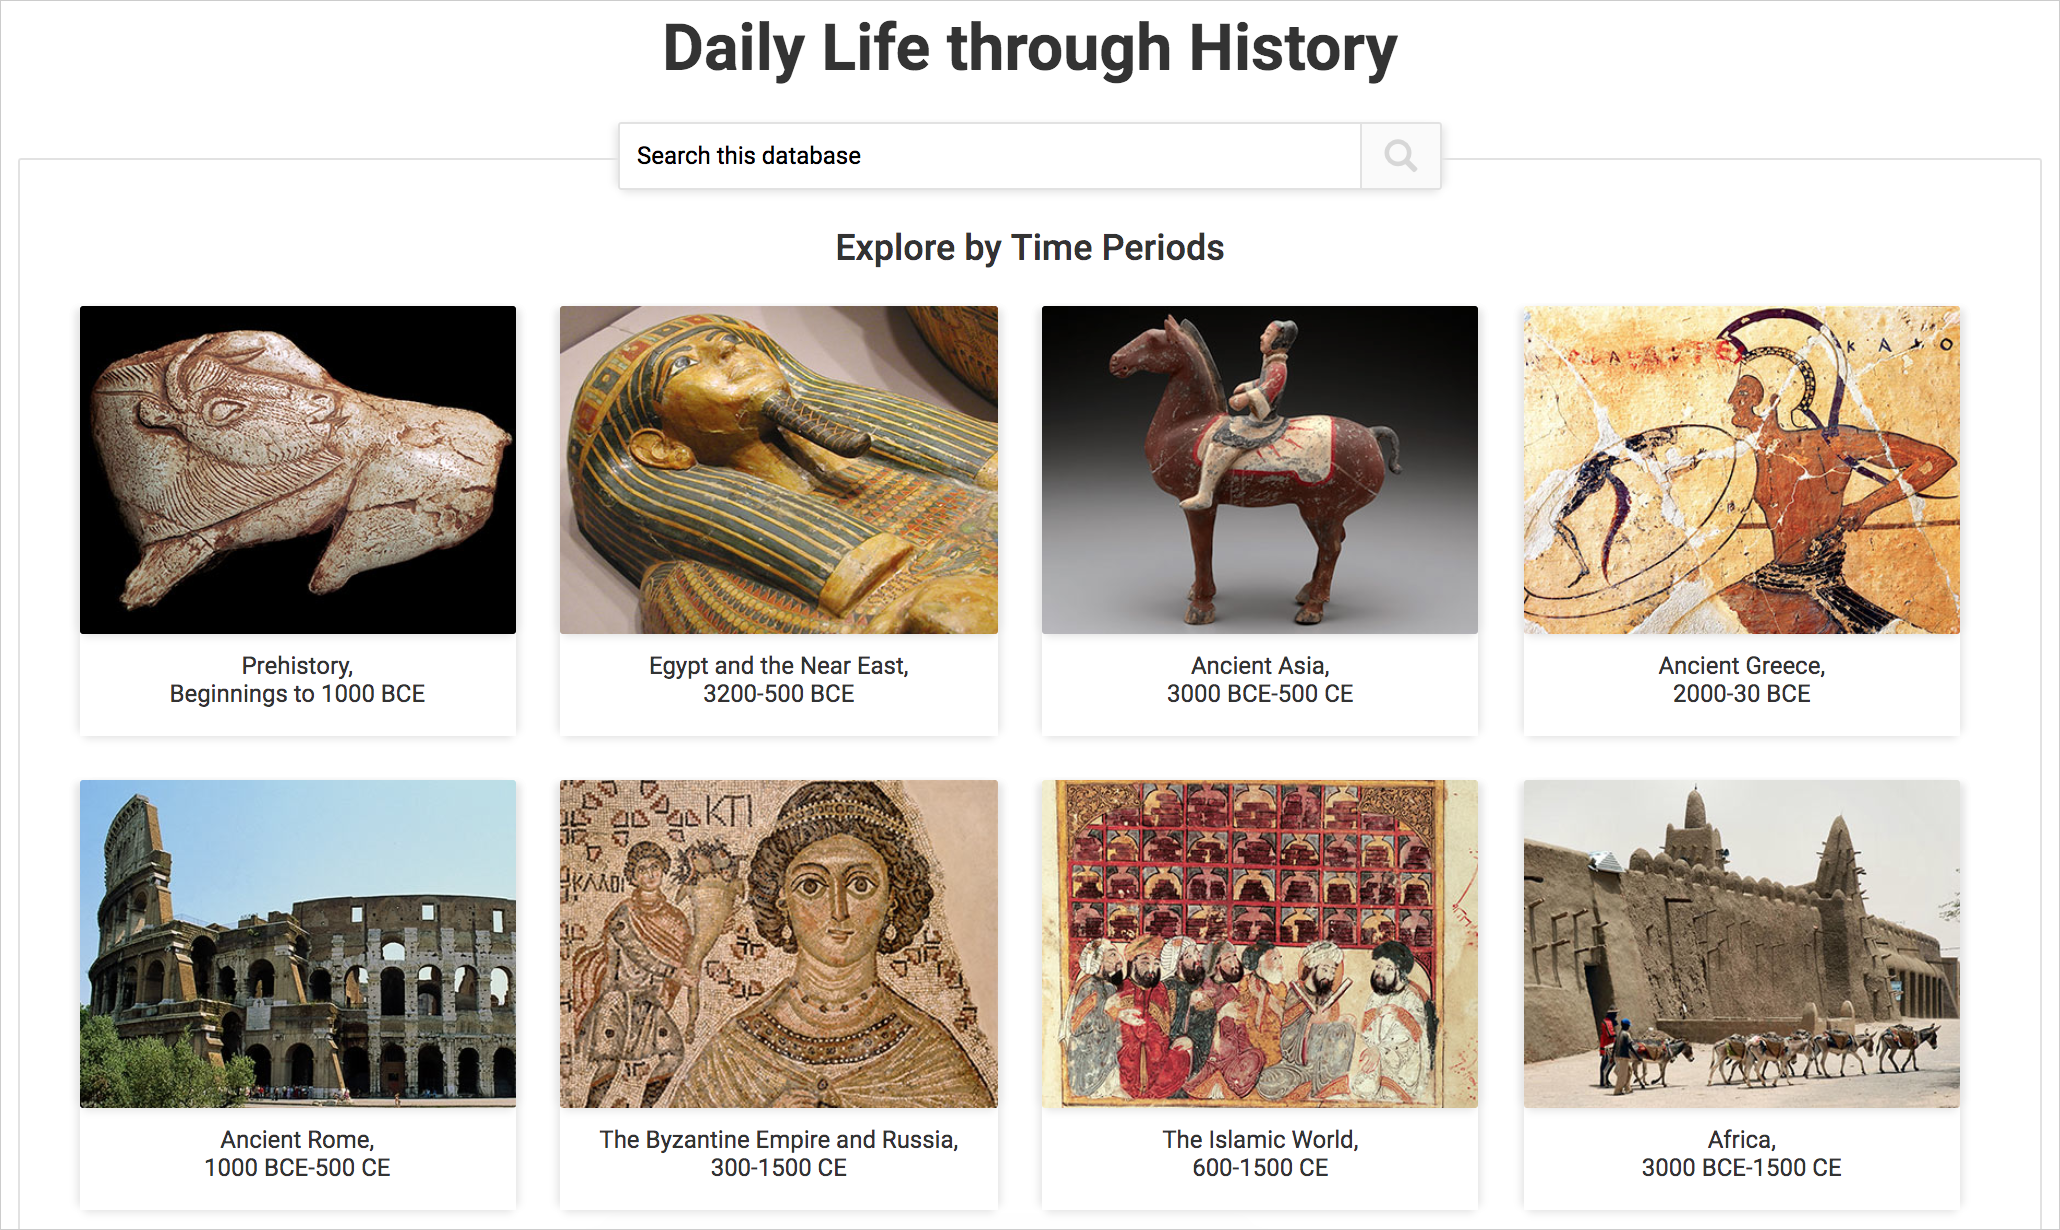 Daily Life through History cover image